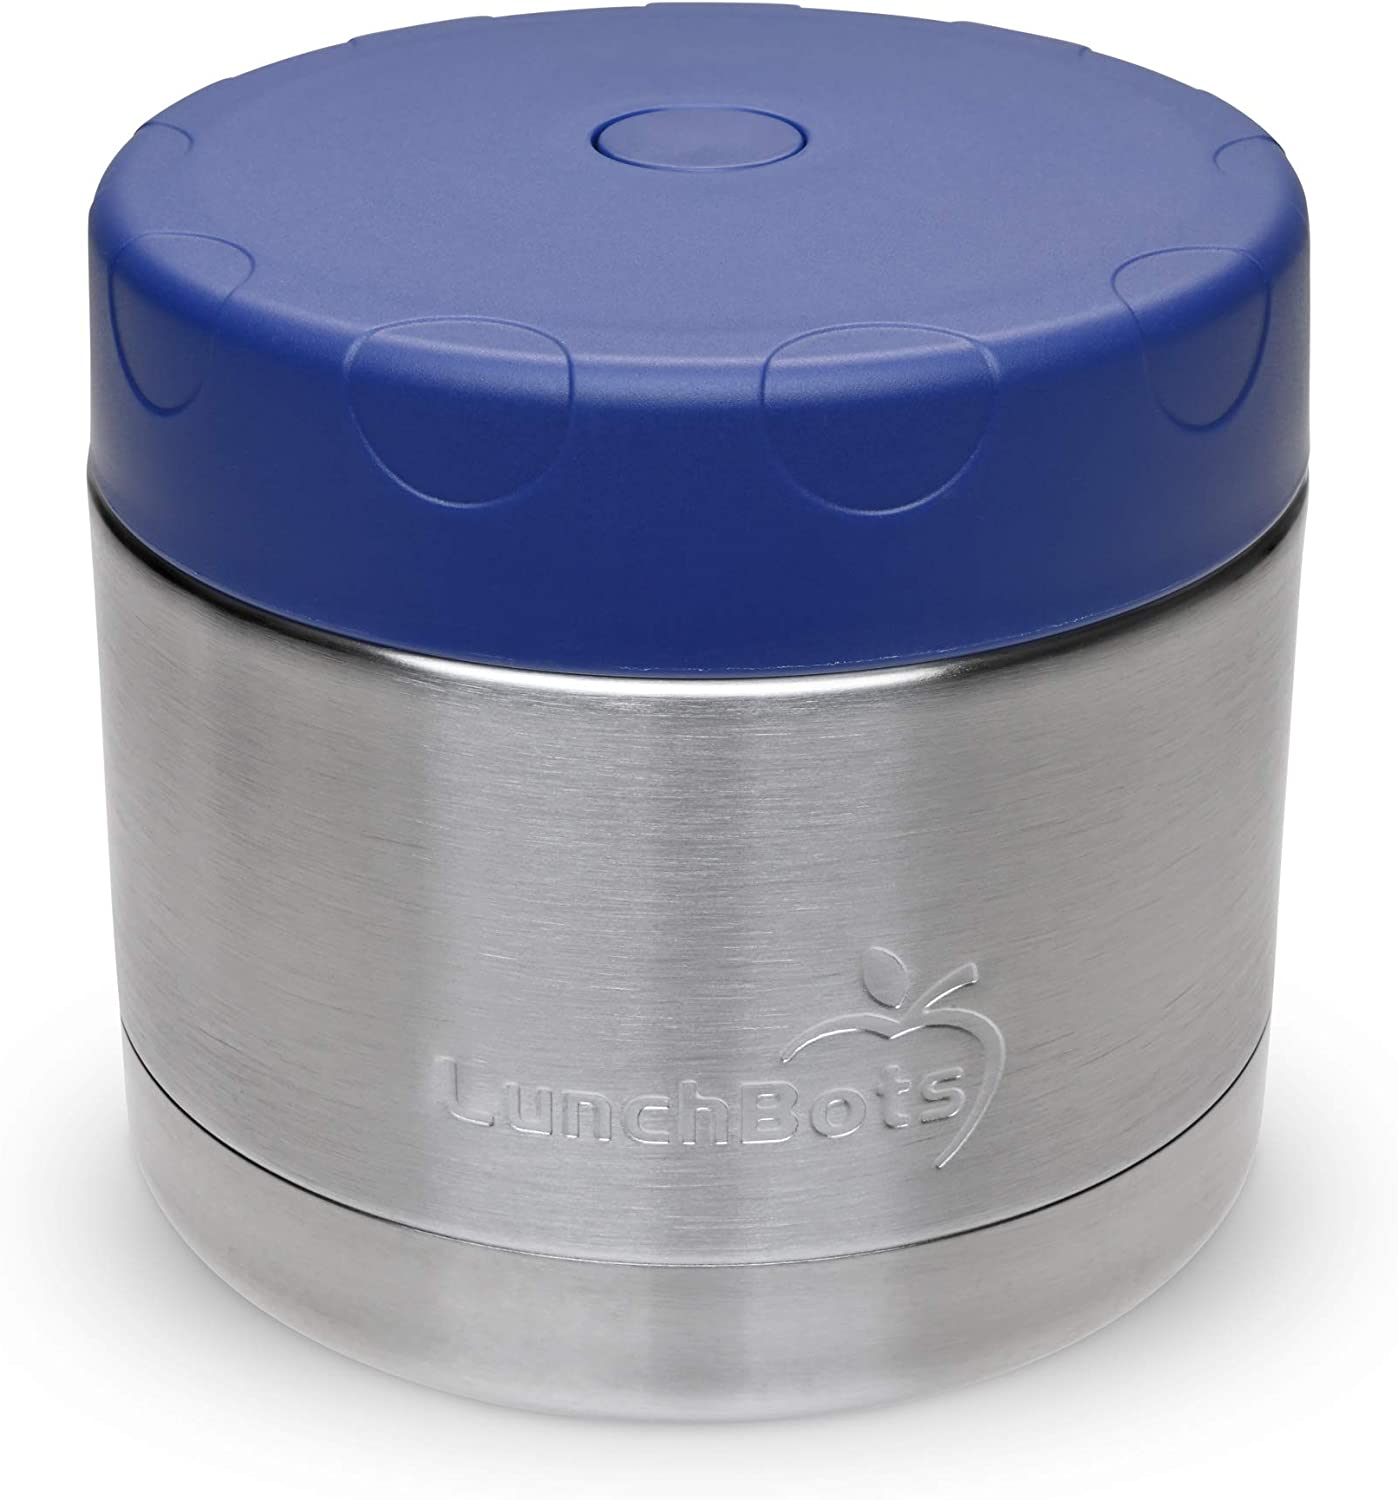 LunchBots 12oz Thermos Stainless Steel Wide Mouth - Insulated Container With Vented Lid - Keeps Food Hot or Cold for Hours - Leak-Proof Portable Thermal Food Jar is Ideal for Soup - 12 ounce - Navy